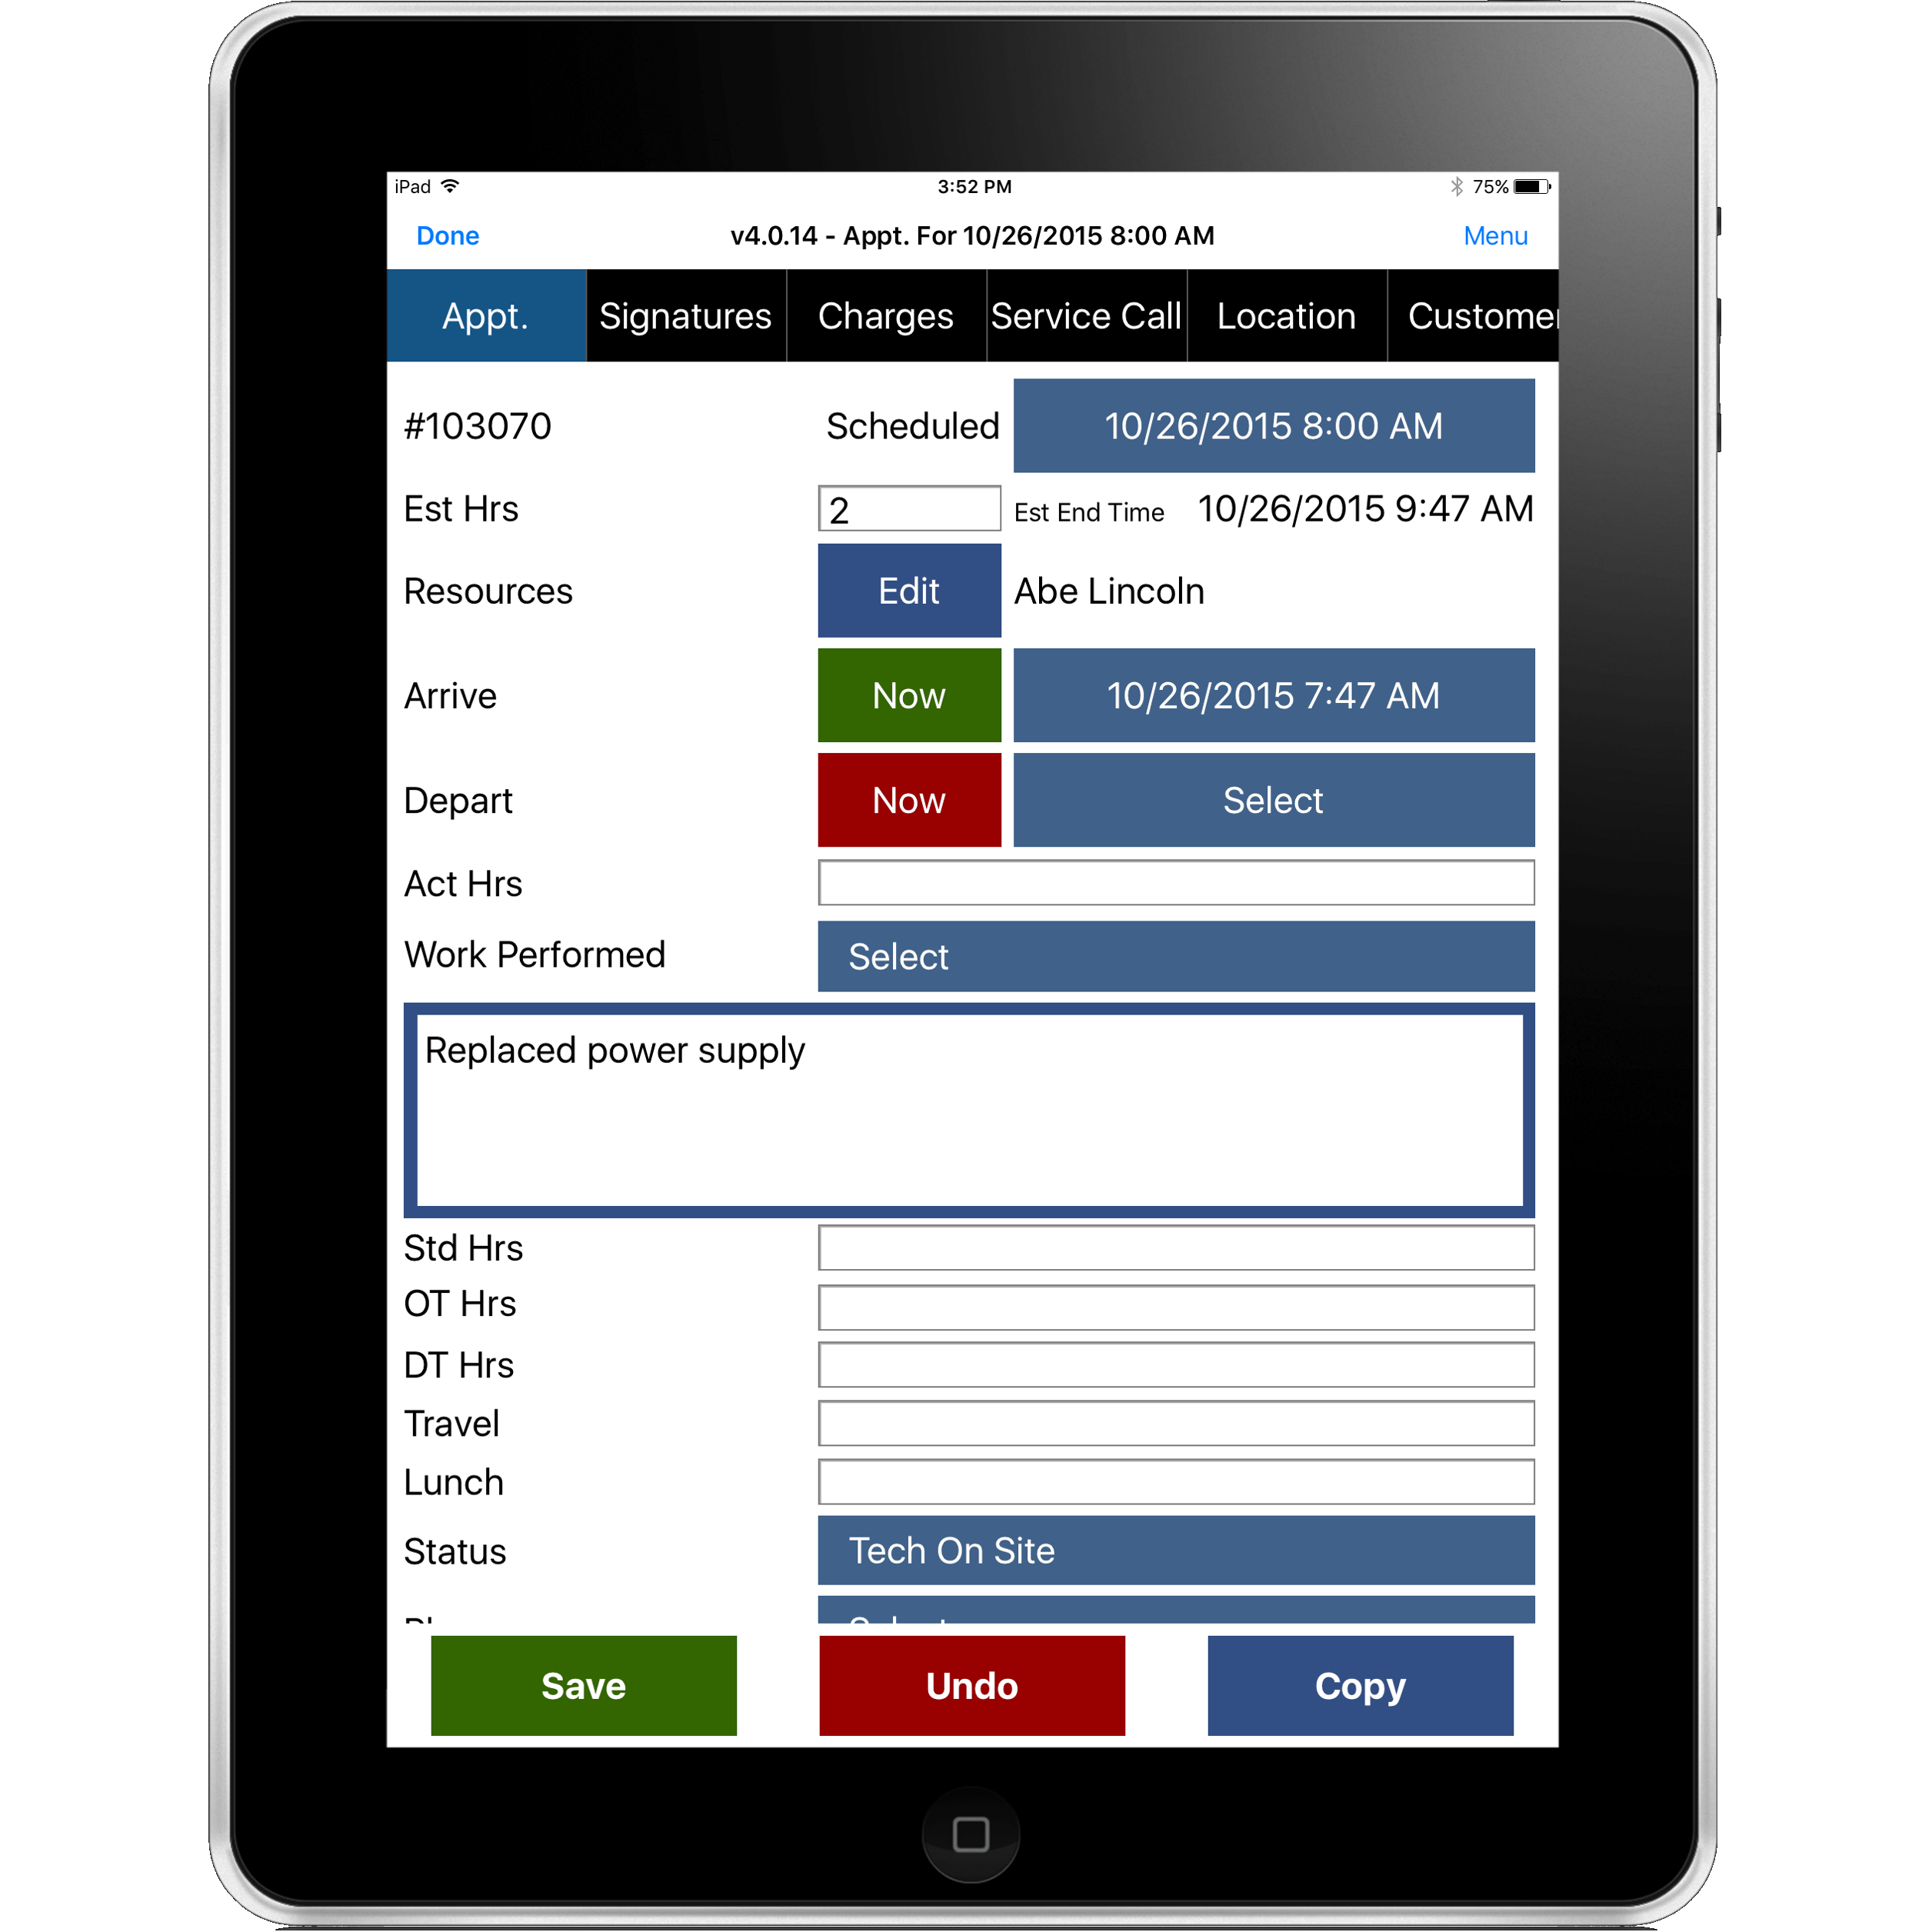 Mobile Resource Manager Field Service Management Software for Apple iPad